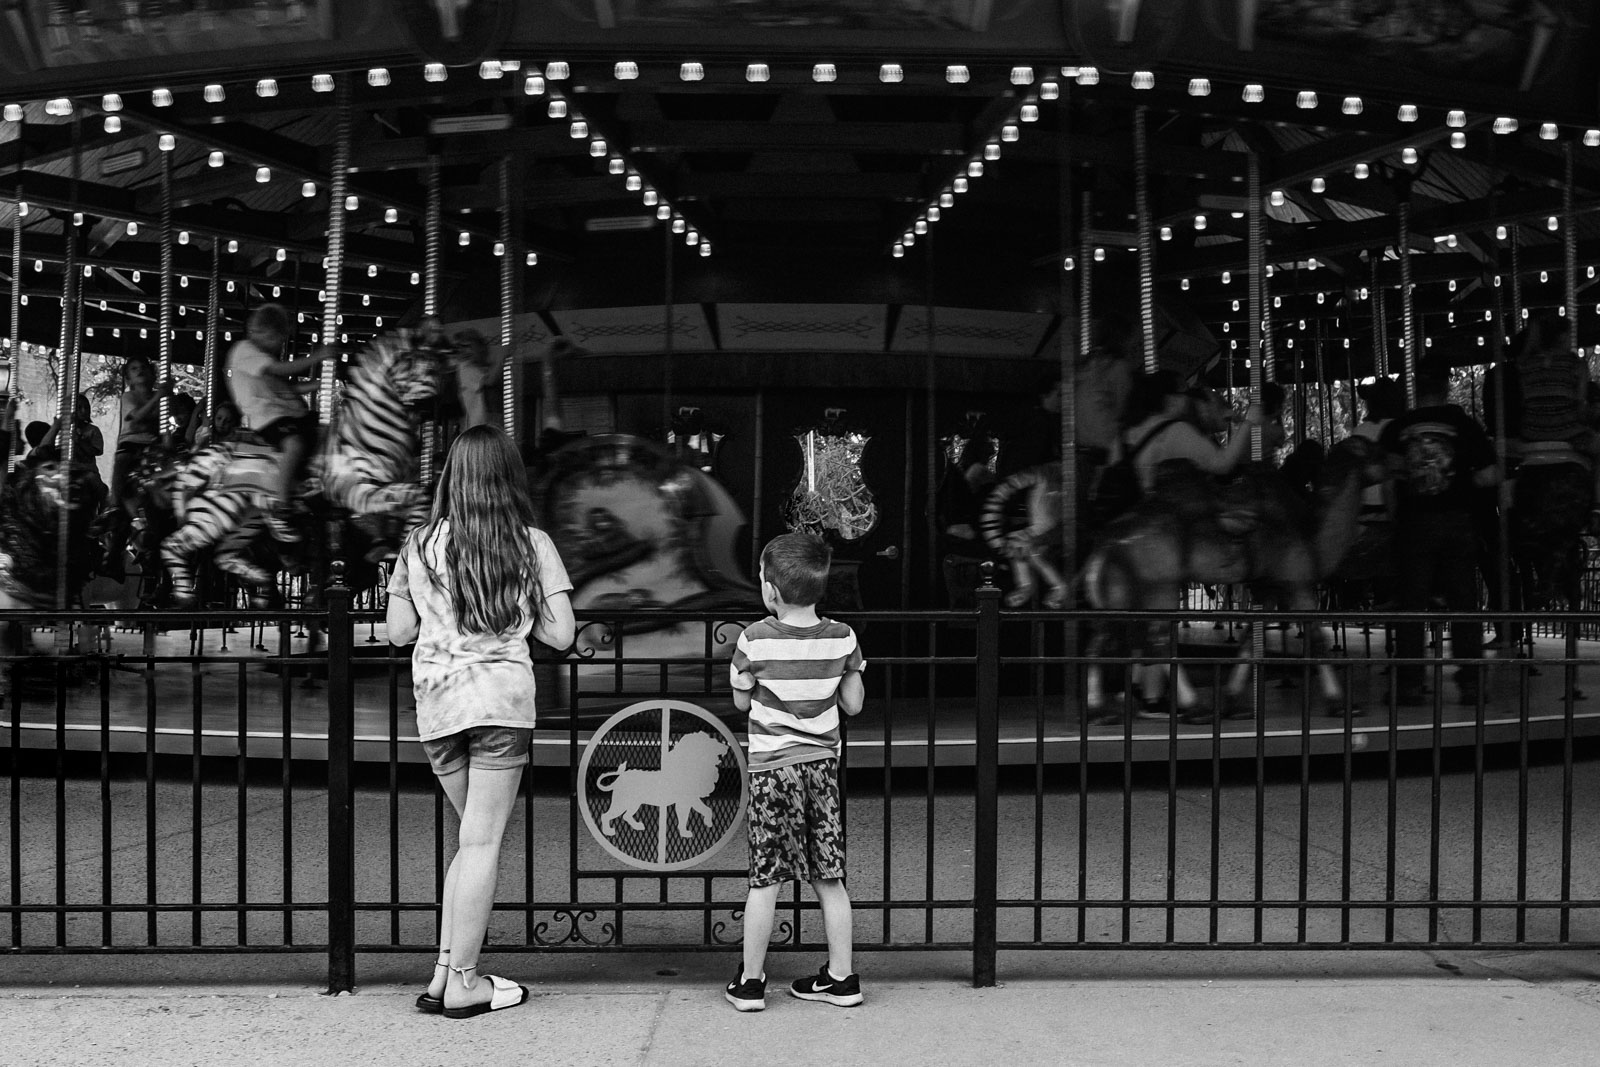 Black and white photo of kids watching carousel